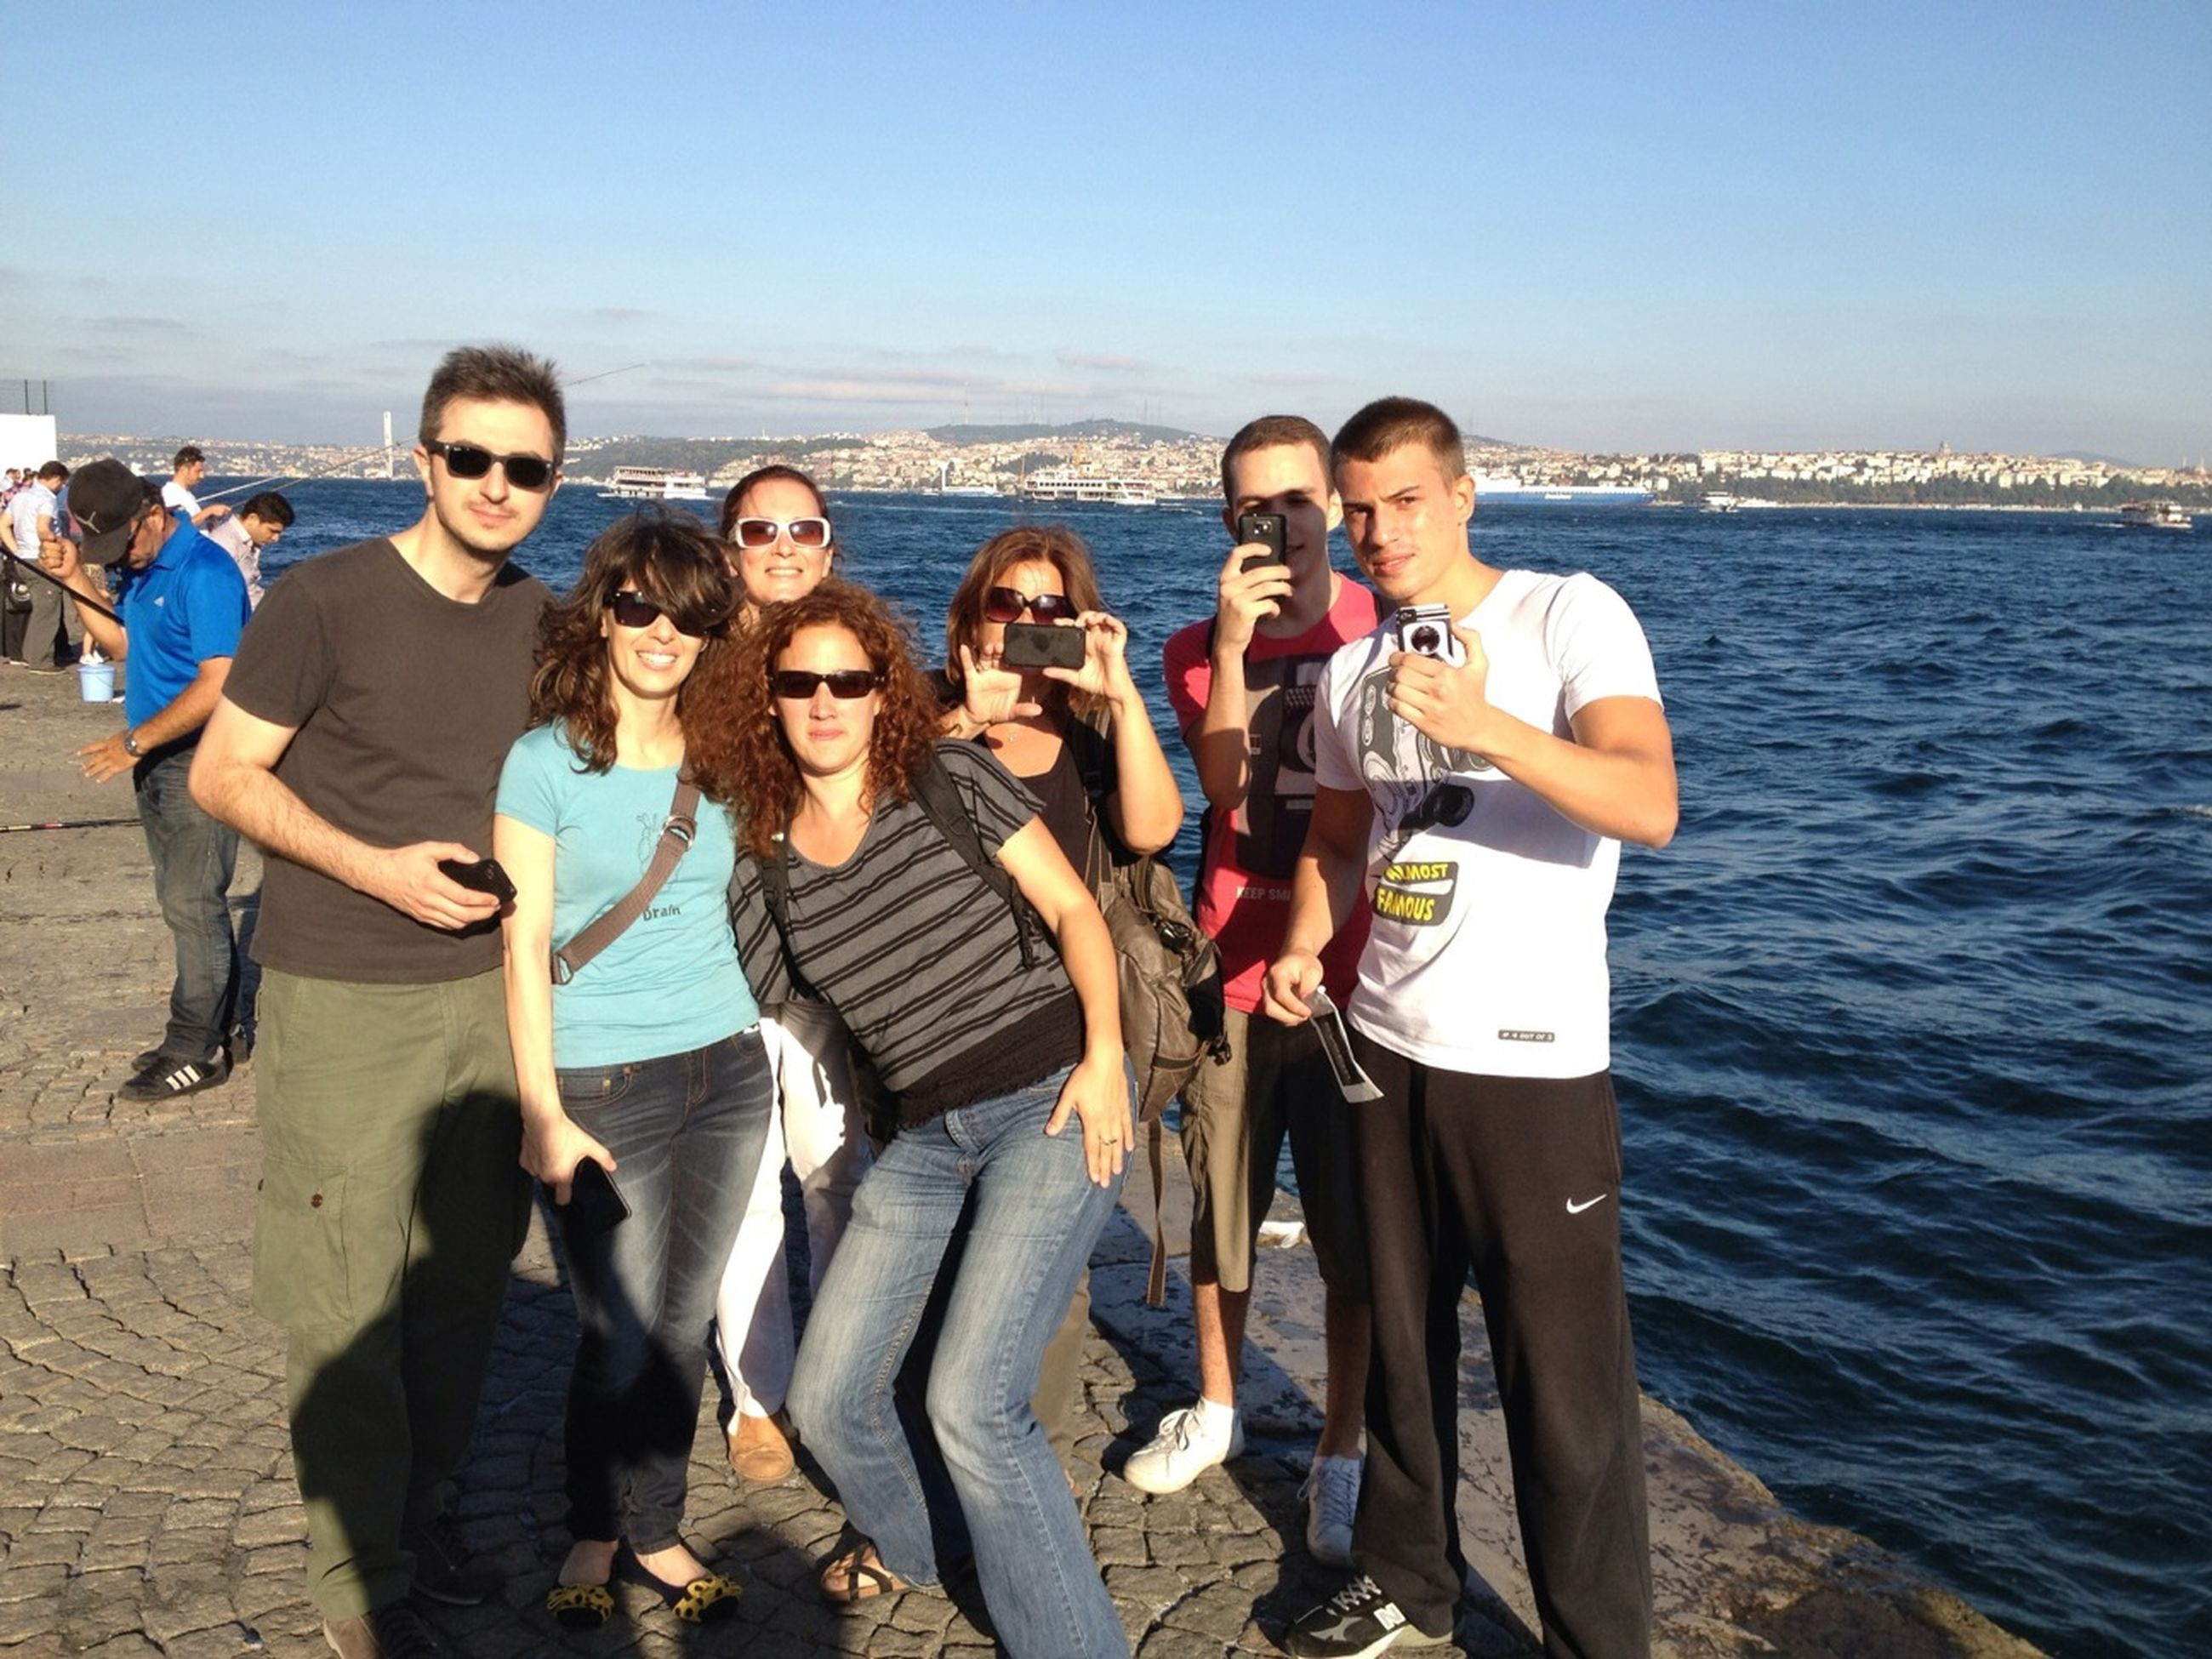 water, lifestyles, togetherness, leisure activity, sea, love, bonding, friendship, casual clothing, vacations, young men, men, enjoyment, large group of people, standing, person, happiness, beach